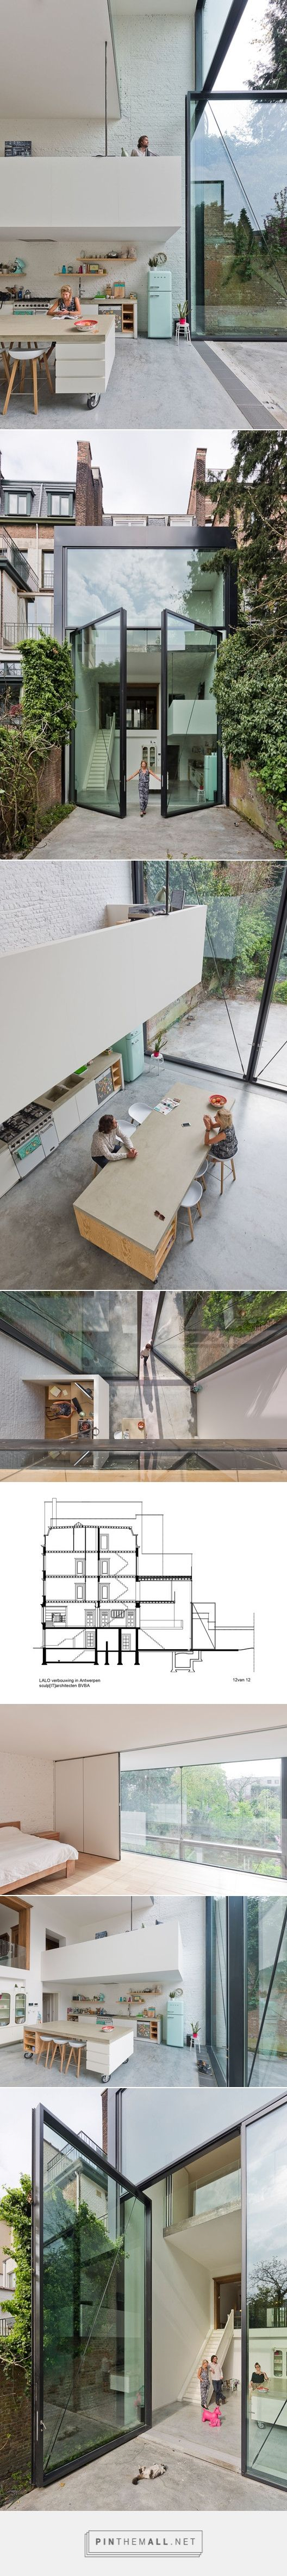 Town House in Antwerp / Sculp[IT] | ArchDaily - created on 2015-07-11 08:48:11